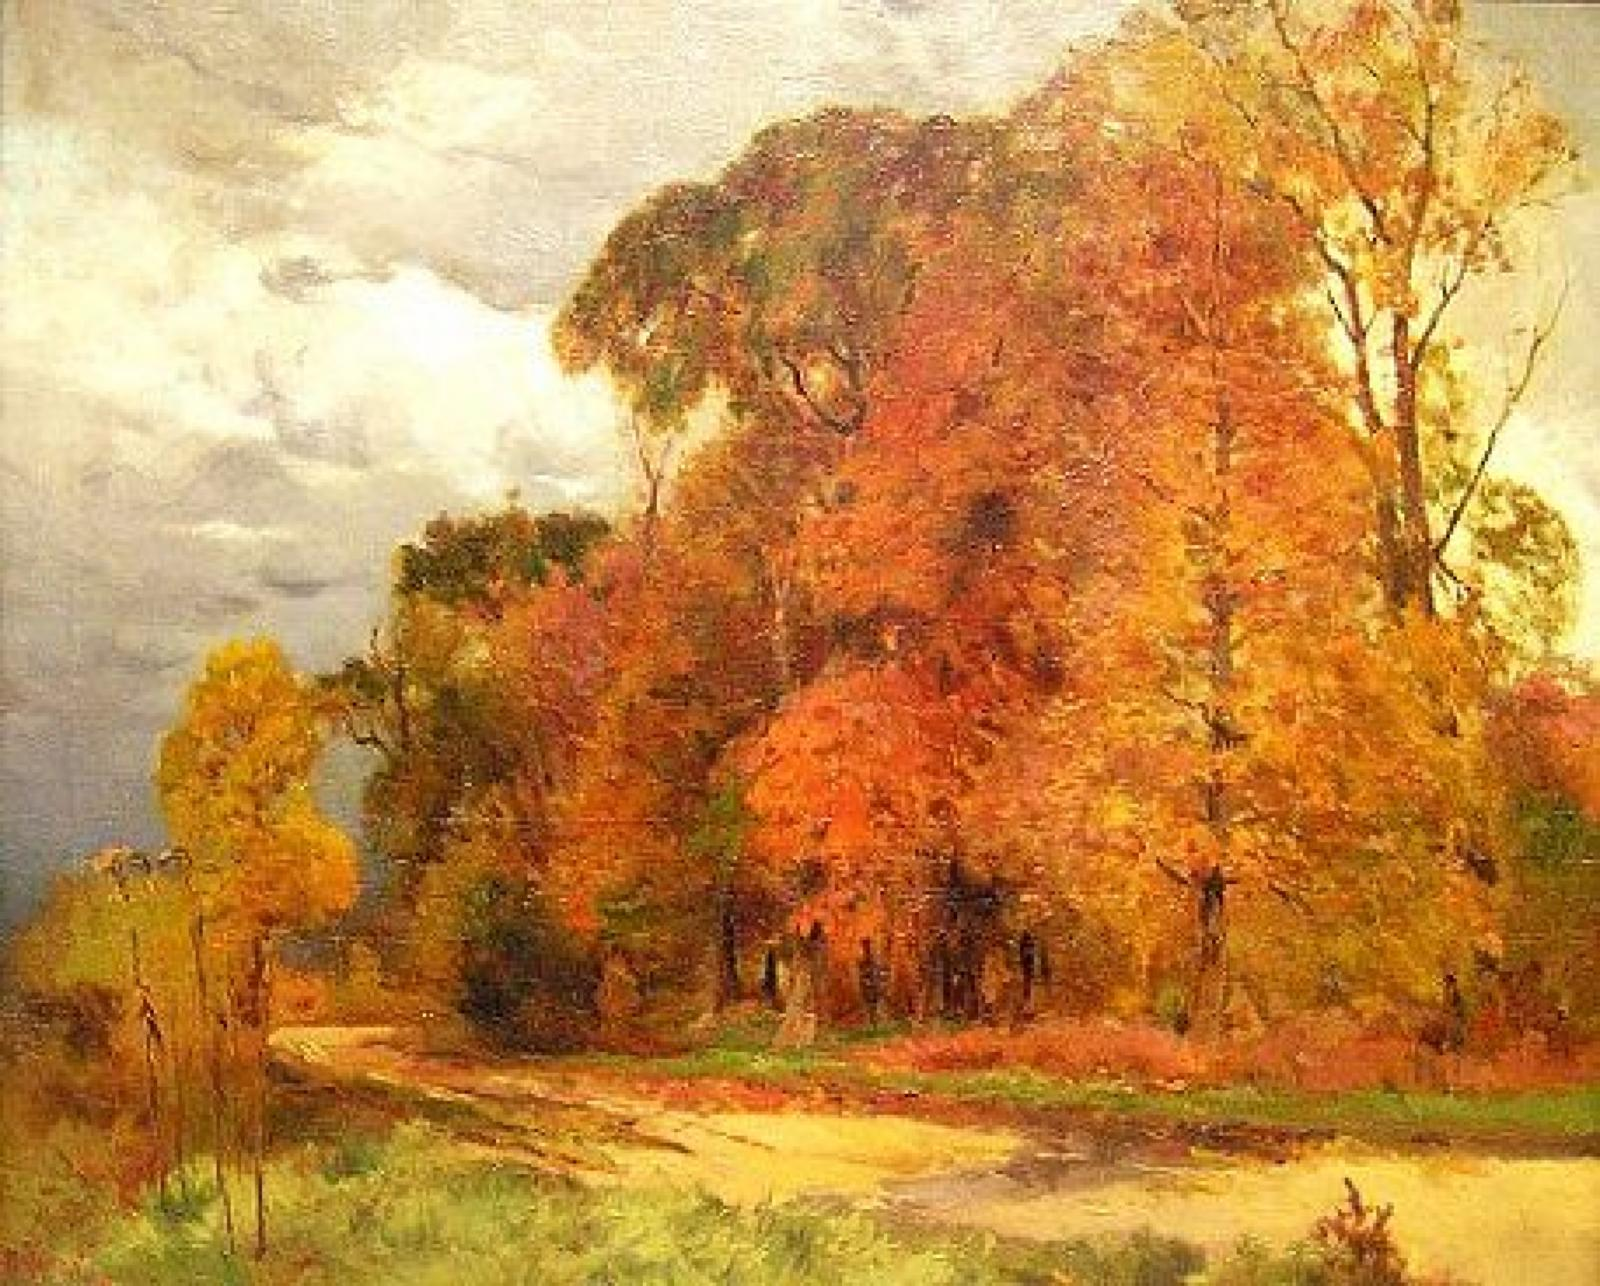 Overcast sky with tall trees with colored leaves in foreground.